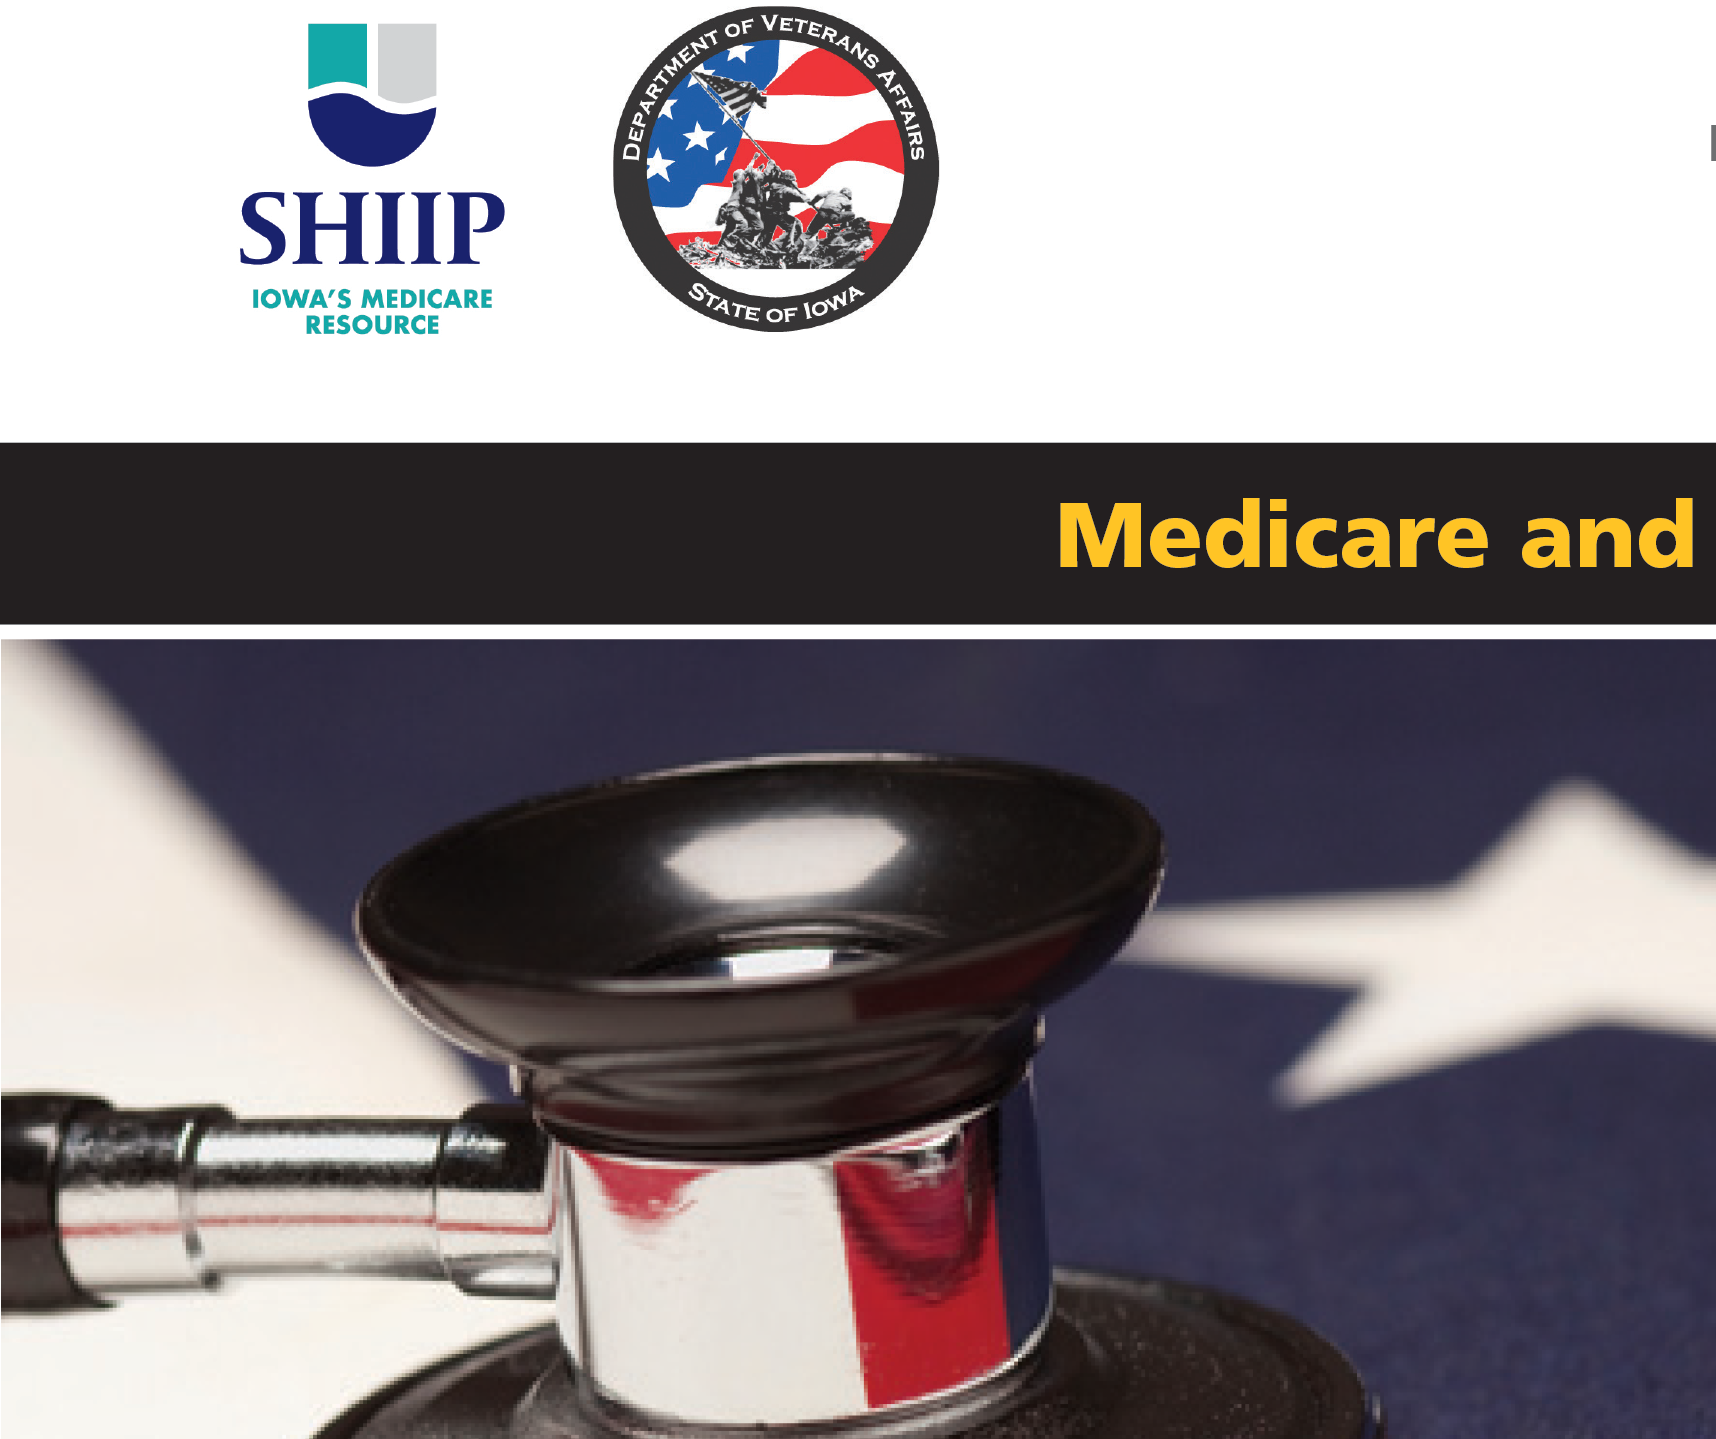 Medicare and VA Health Care Benefits